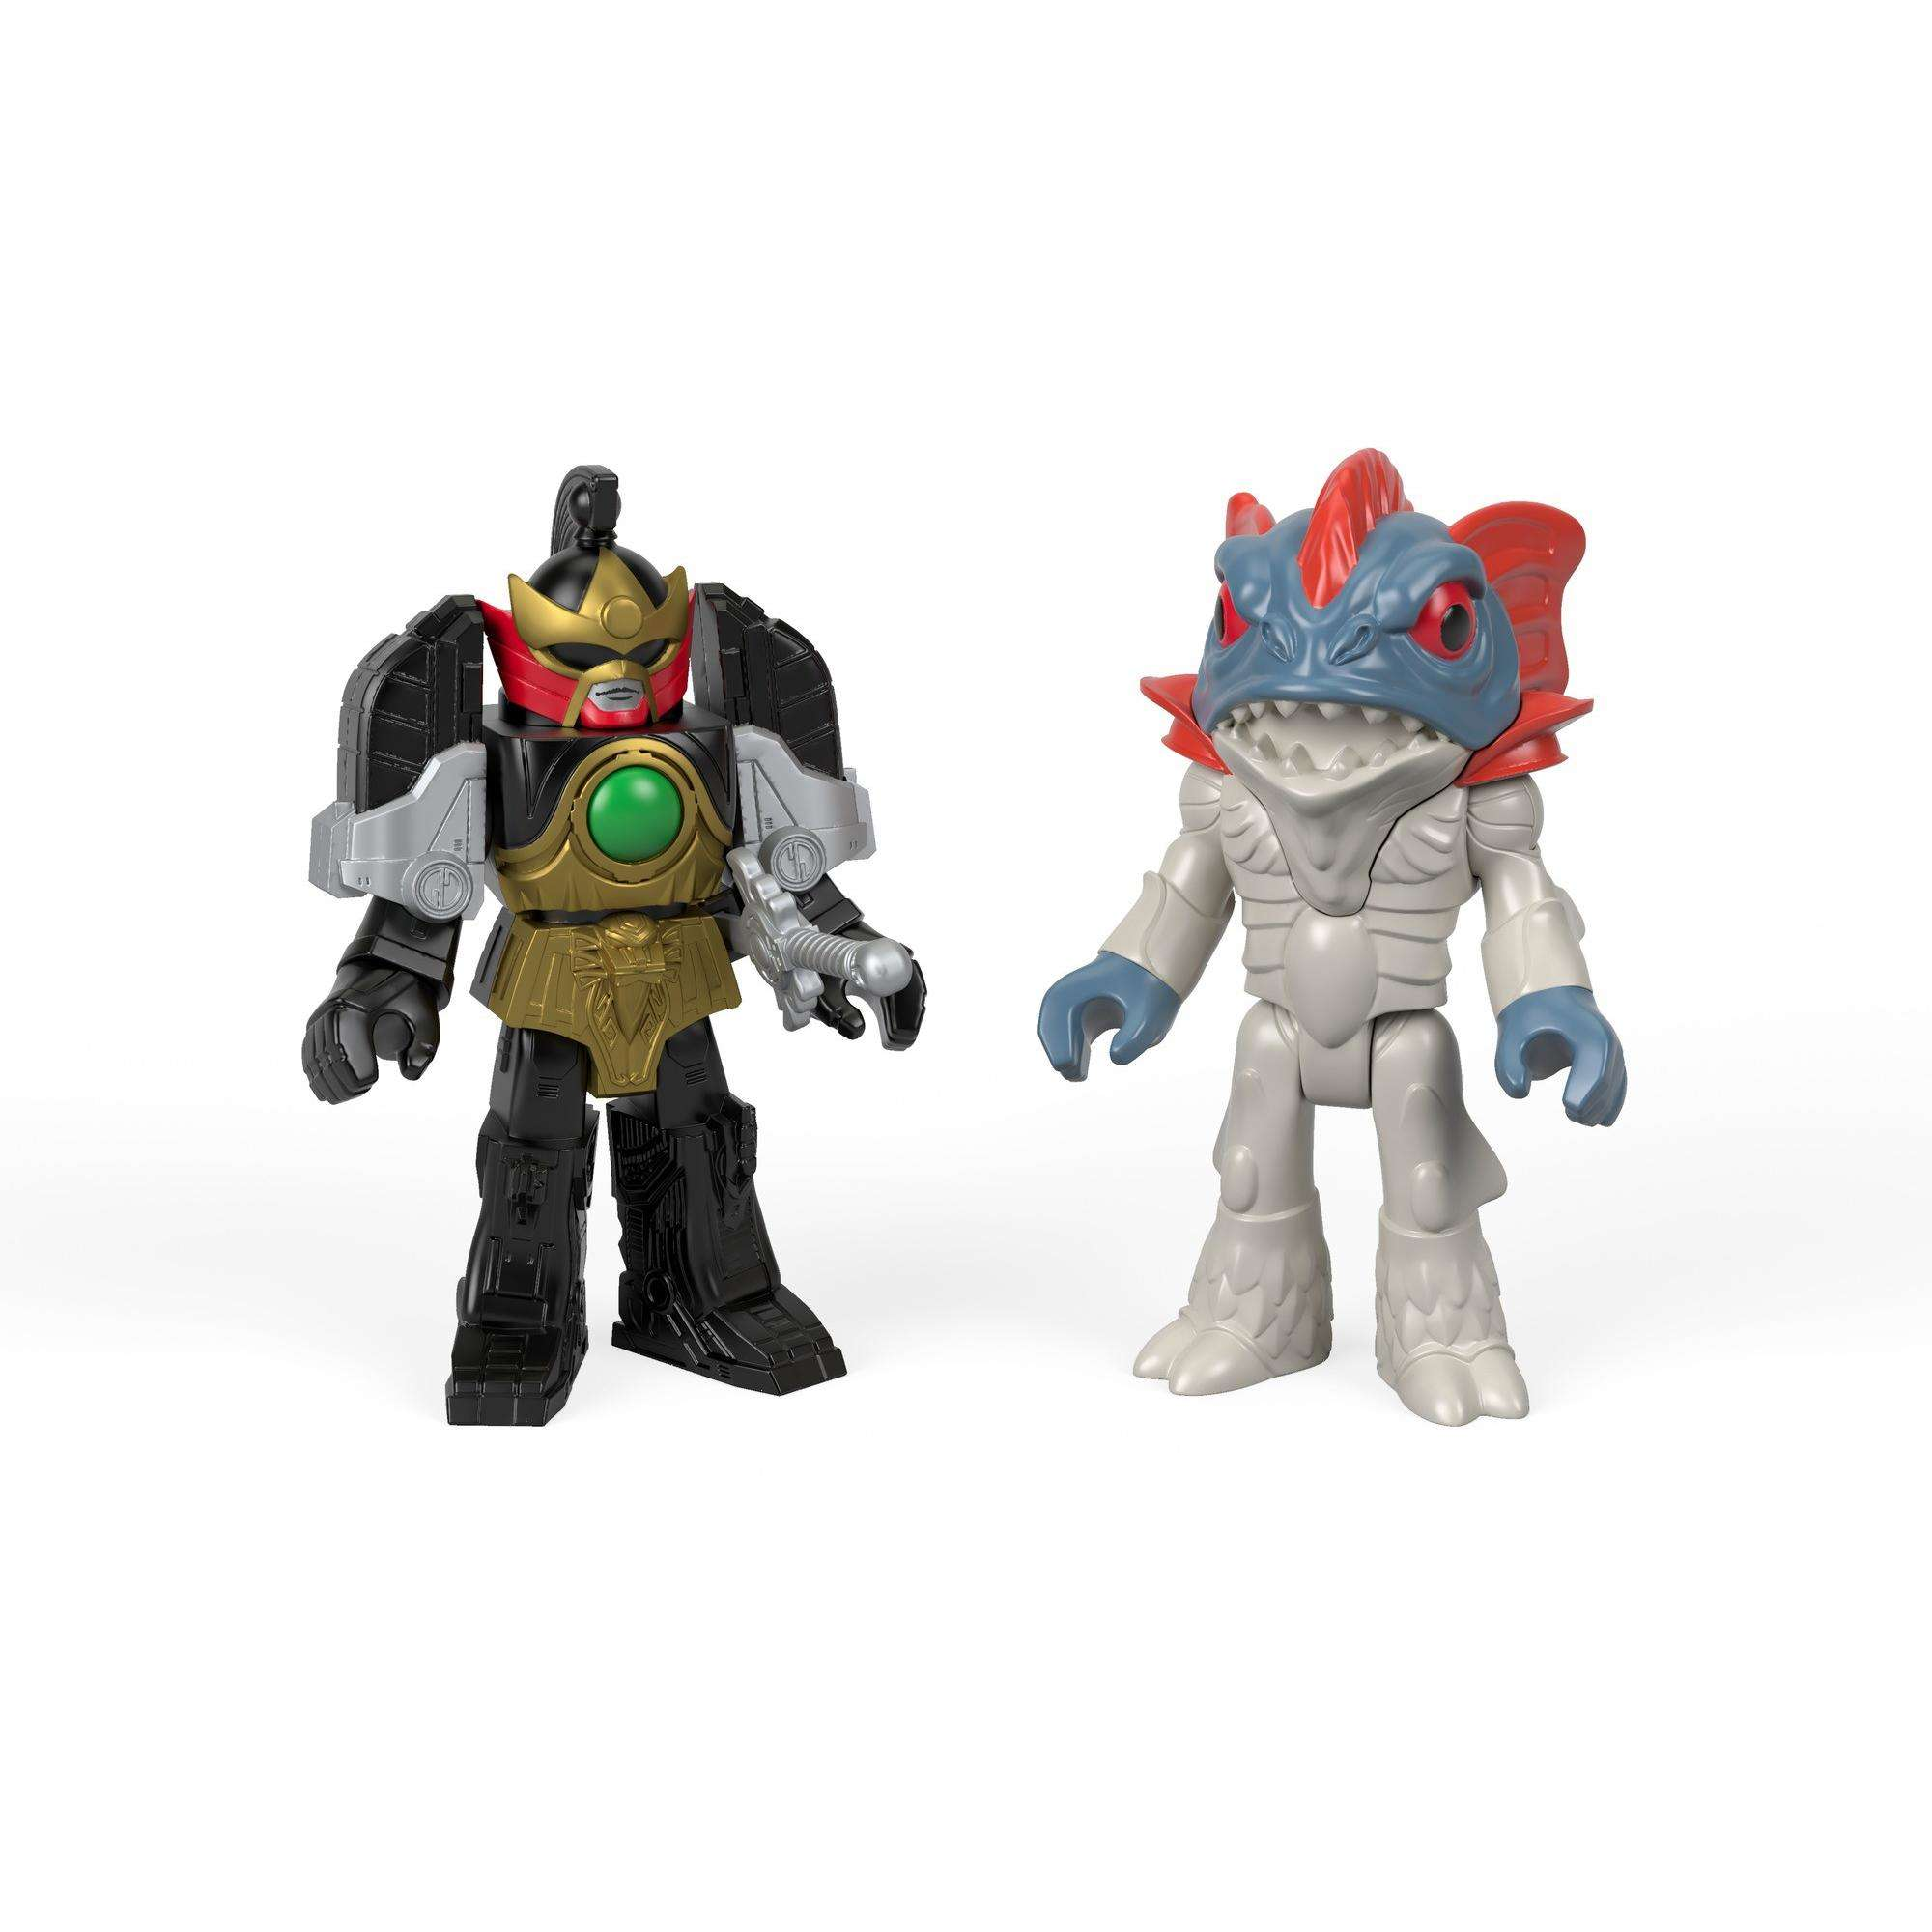 Imaginext Power Rangers Thunder Megazord & Pirantishead